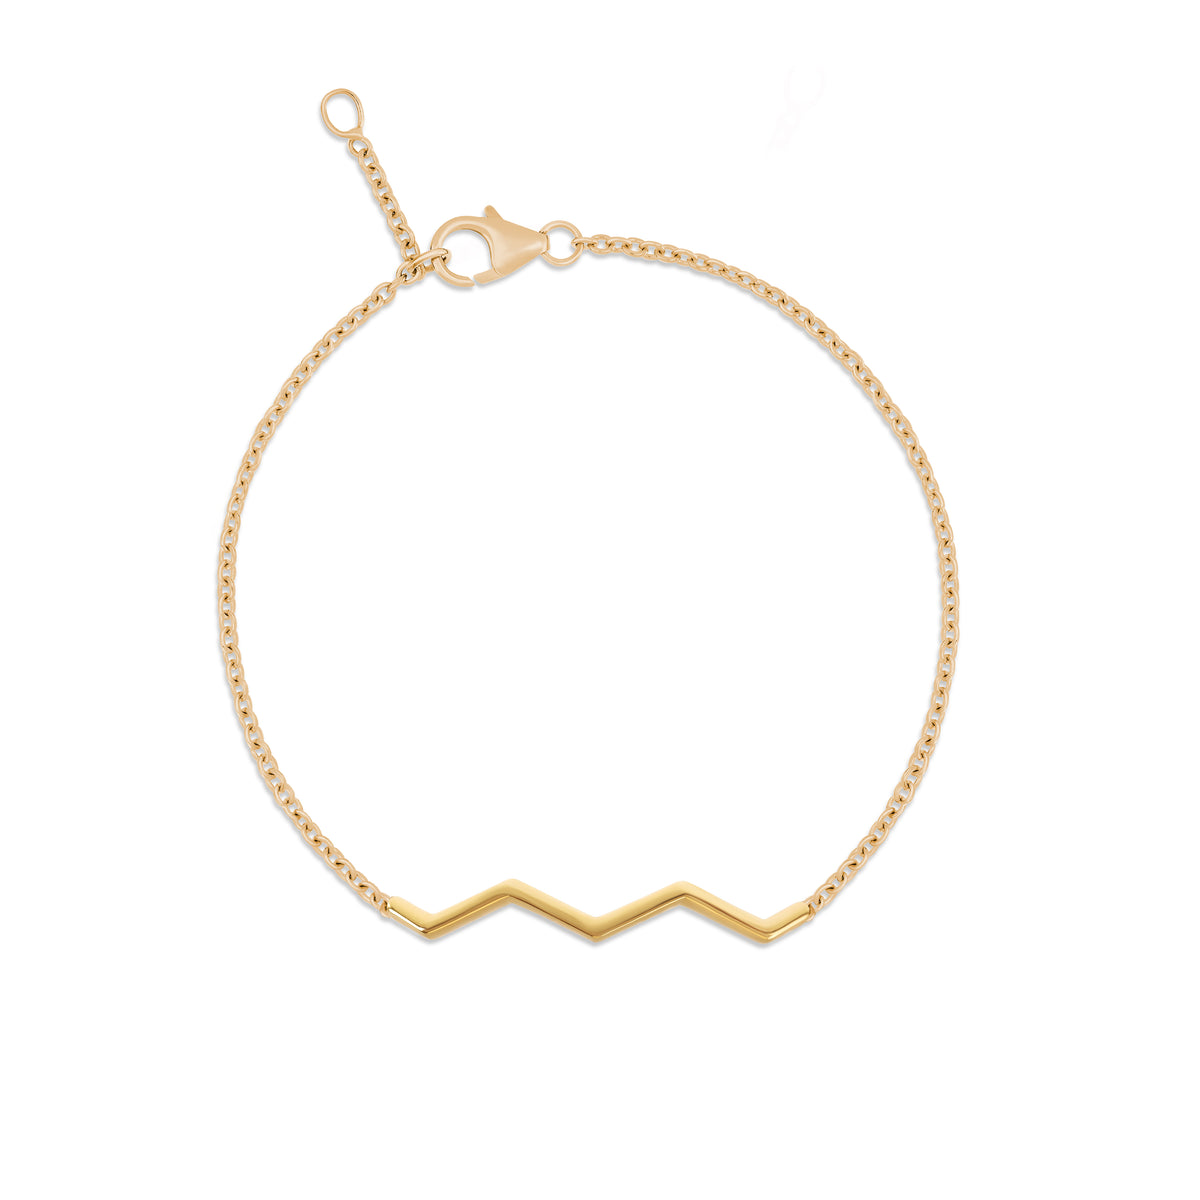 Chained Zig-Zag Bracelet in Yellow Gold